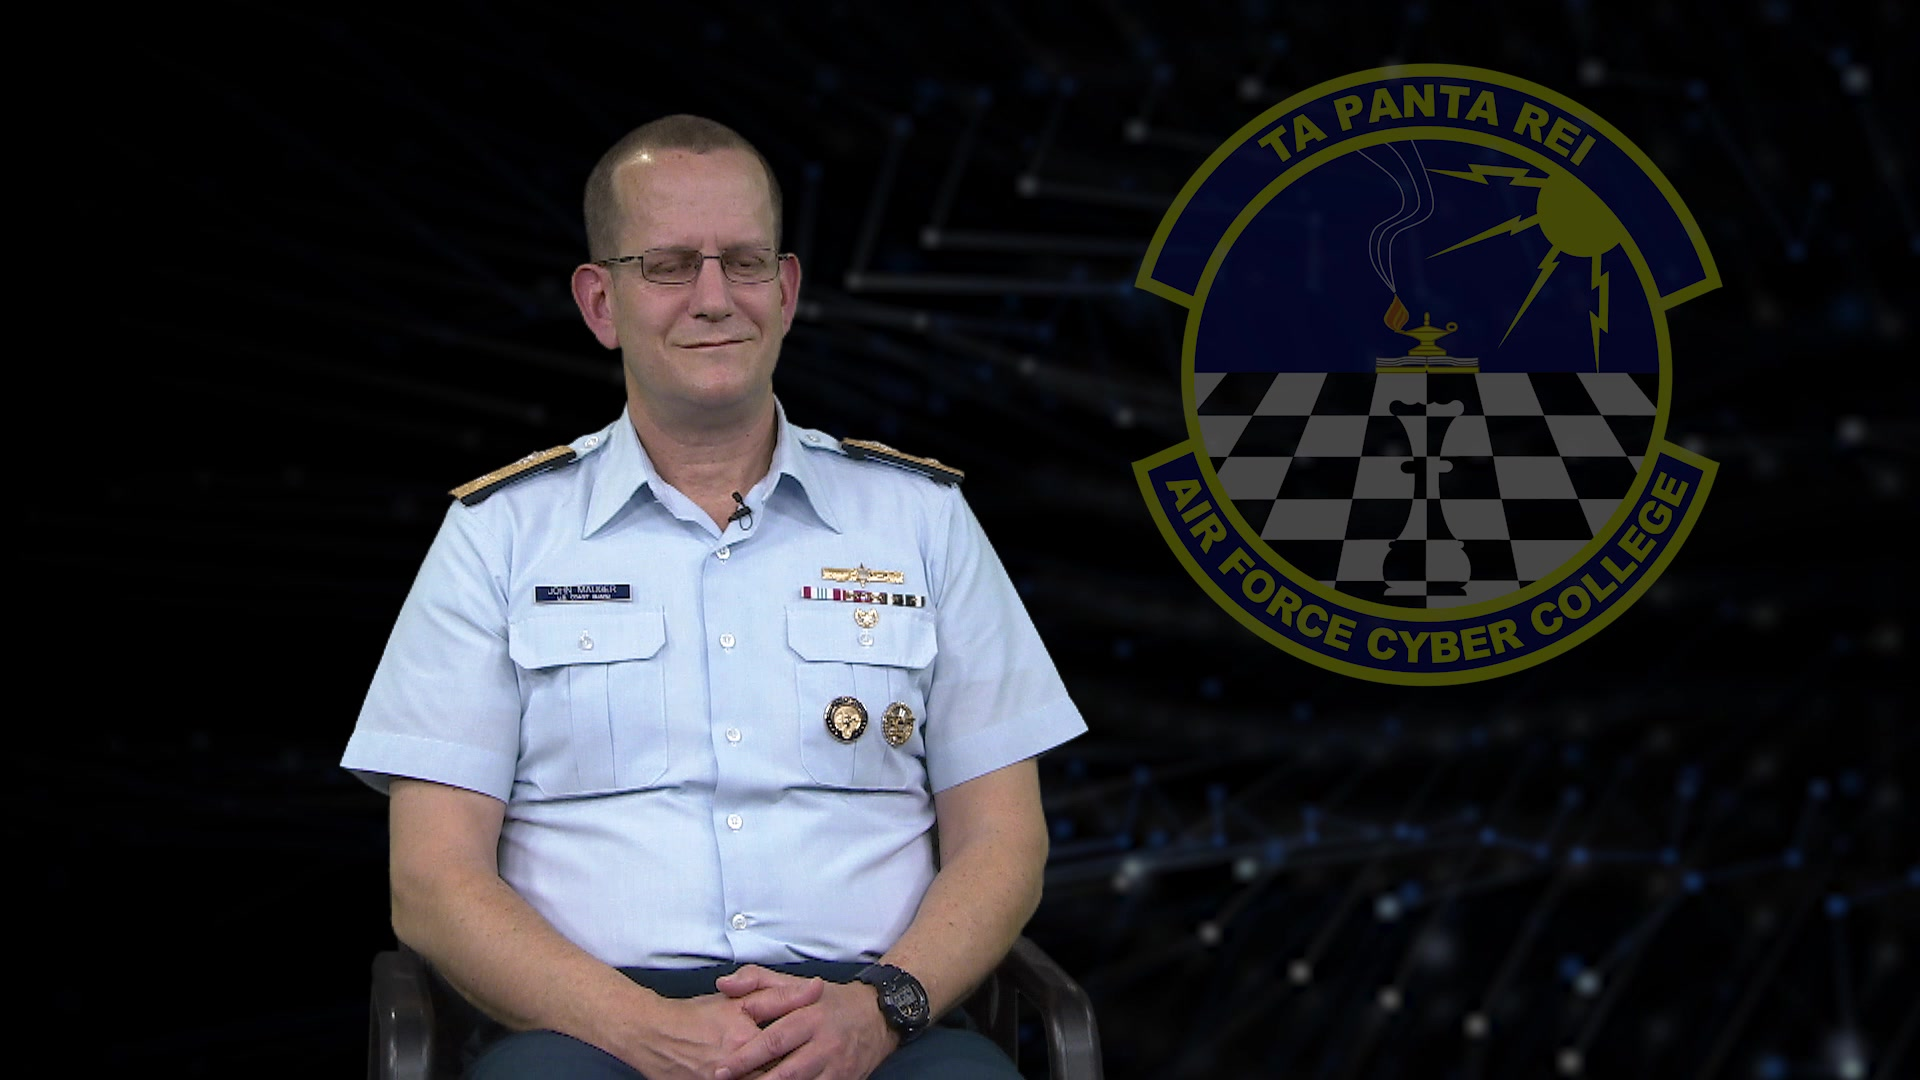 Video #3: One-on-one interview with RDML John Mauger, US CYBERCOM led by Col Kevin Beeker, Air Force Cyber College discussing cyber training and the role of professional military education. Video #3 of 5.